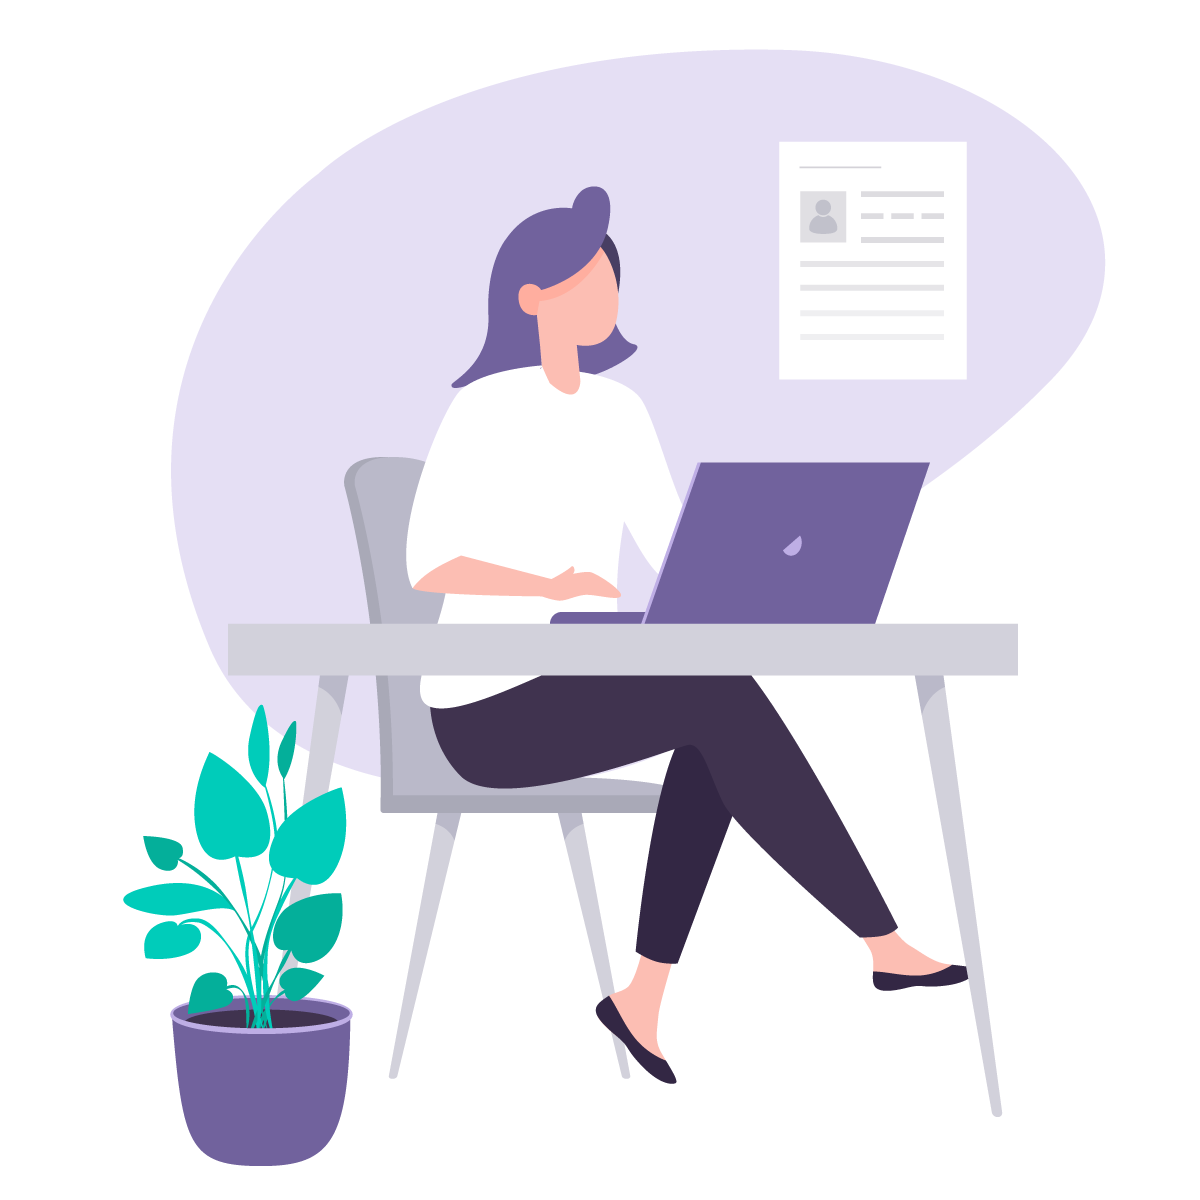 Illustration of person using computer to fill out form